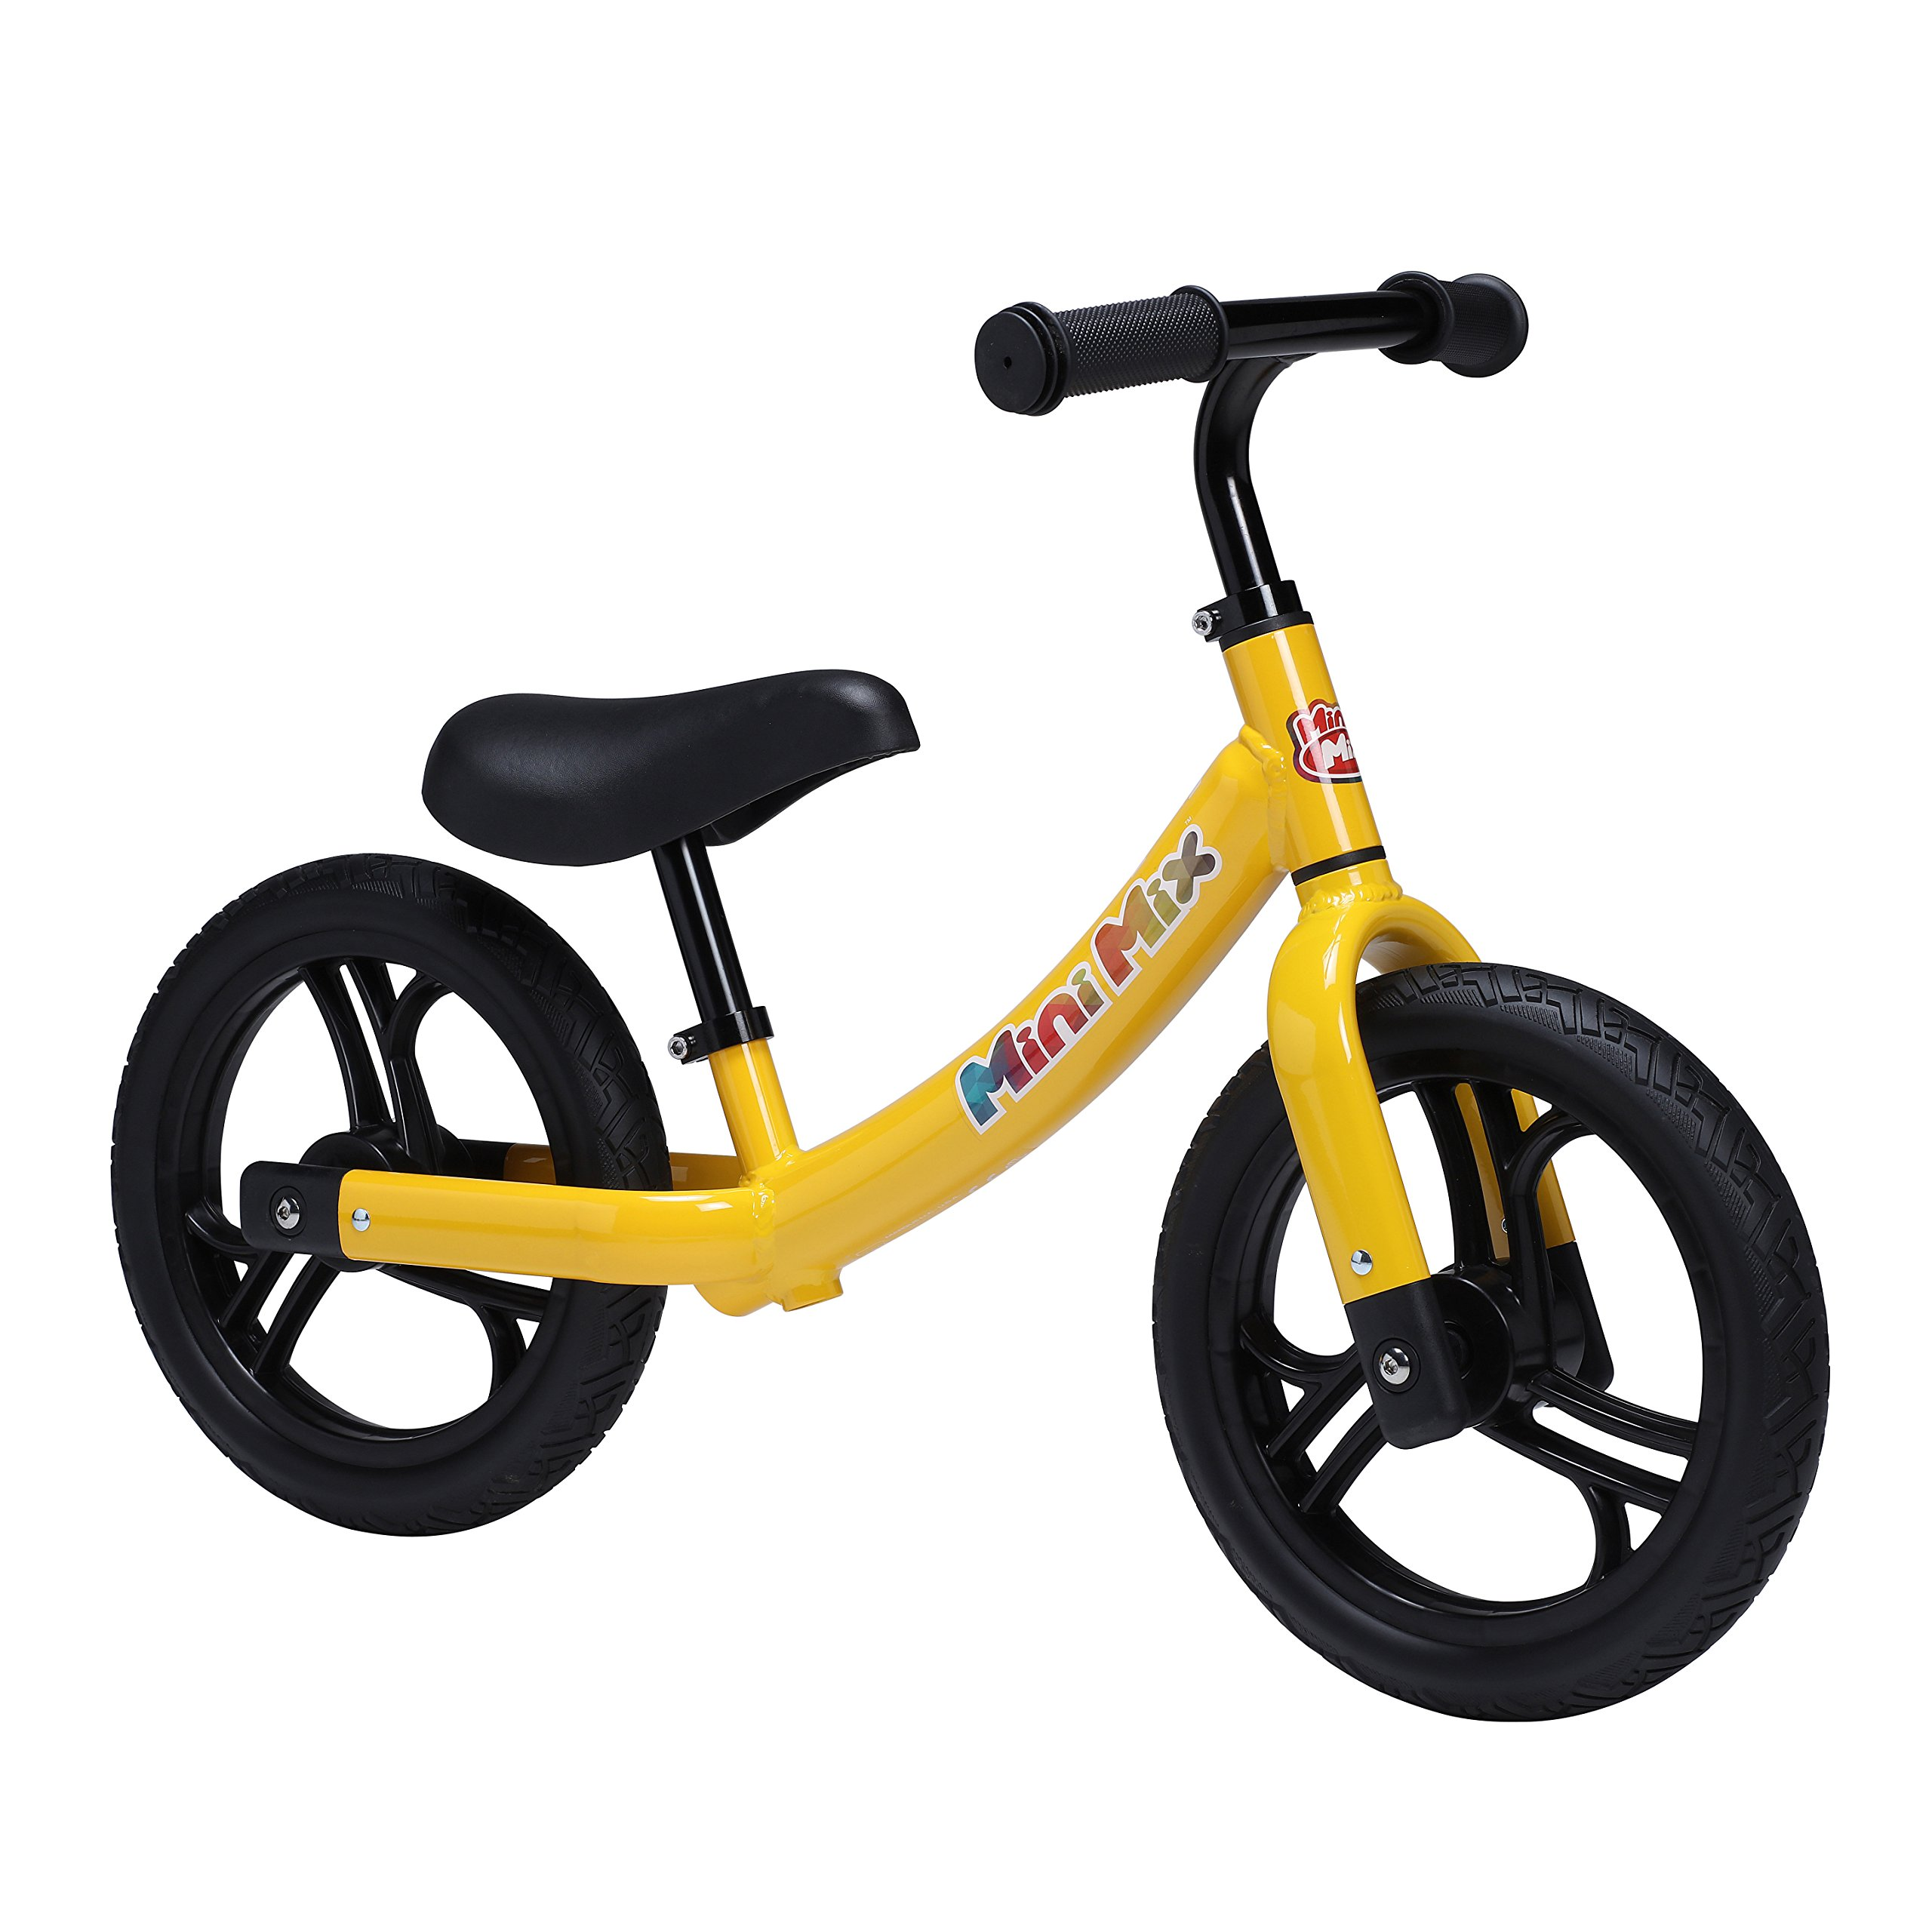 Mini Mix Balance Bike For Kids And Toddlers with Padded Seat, No Pedal Aluminum Frame and 12 Inch No Flat Tire